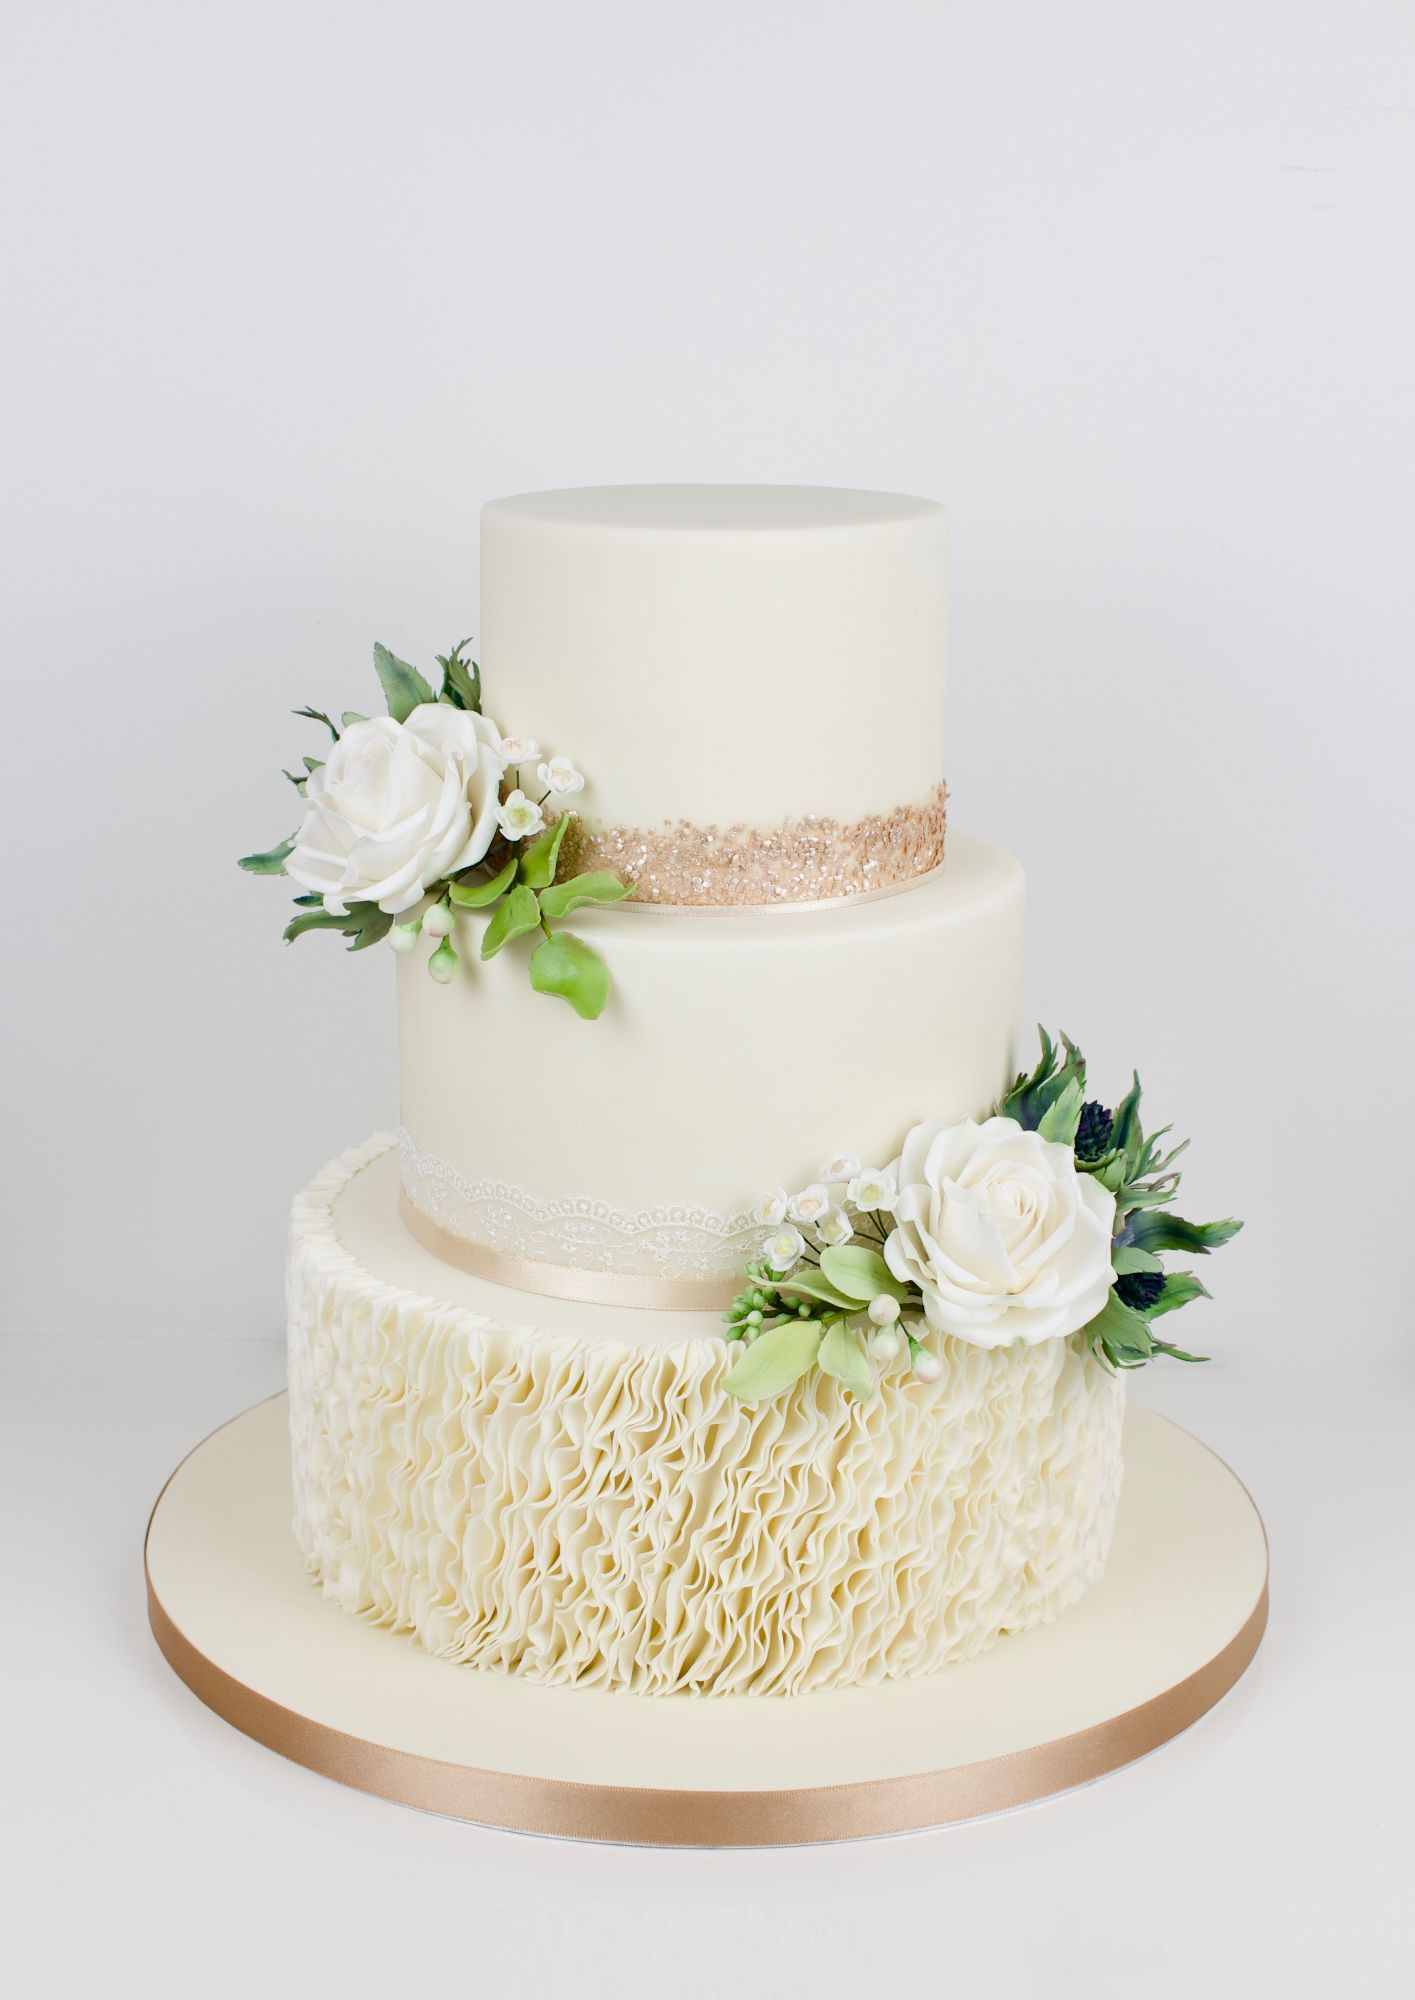 3 tiers icing ruffles with lace, glitter and handmade sugar white roses and thistles